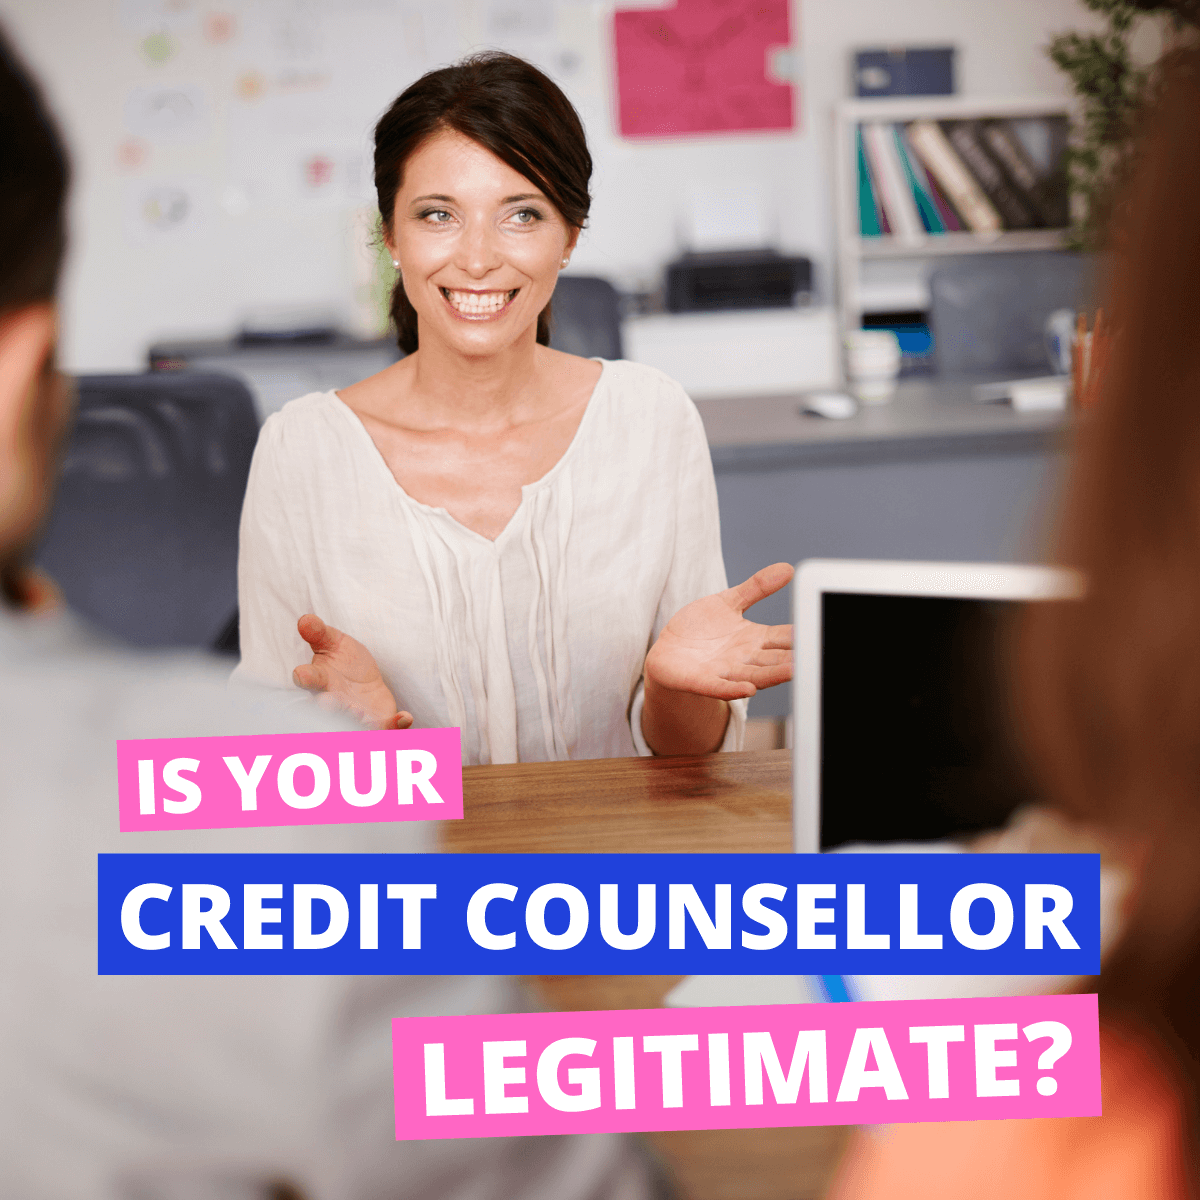 How To Deal With Fraudulent Credit Counselling